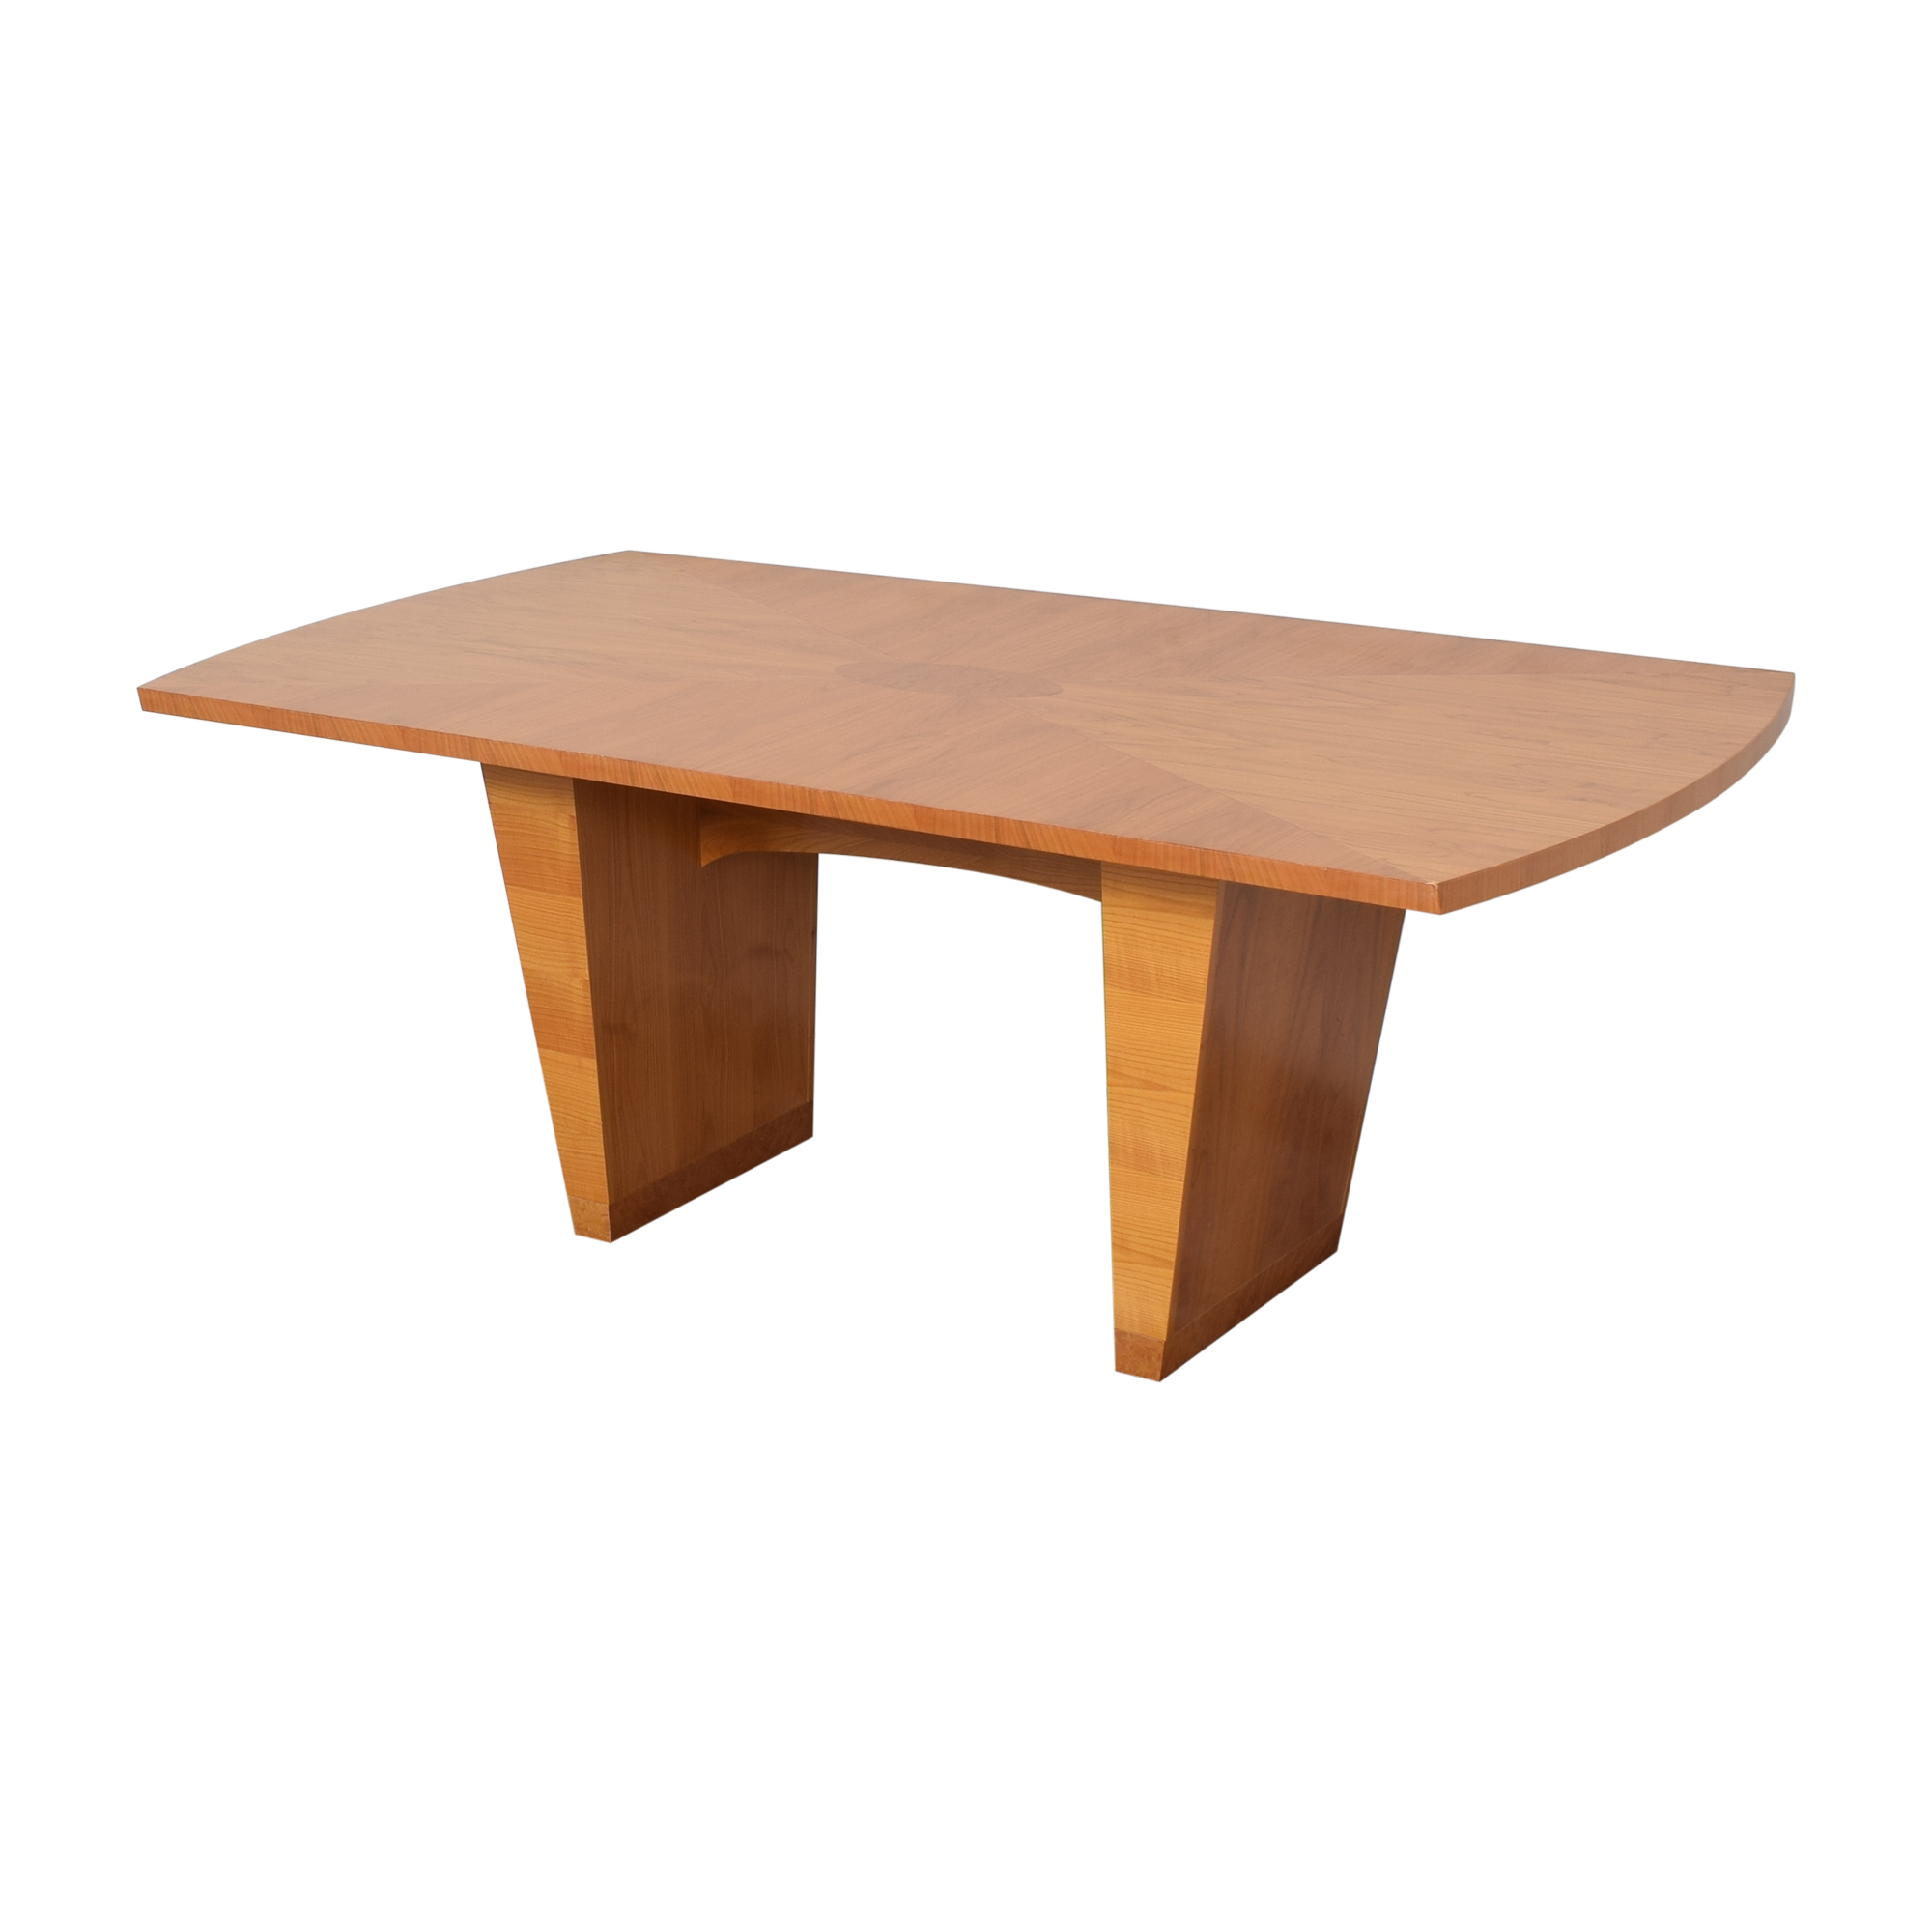 Excelsior Designs Excelsior Designs Extendable Dining Table price